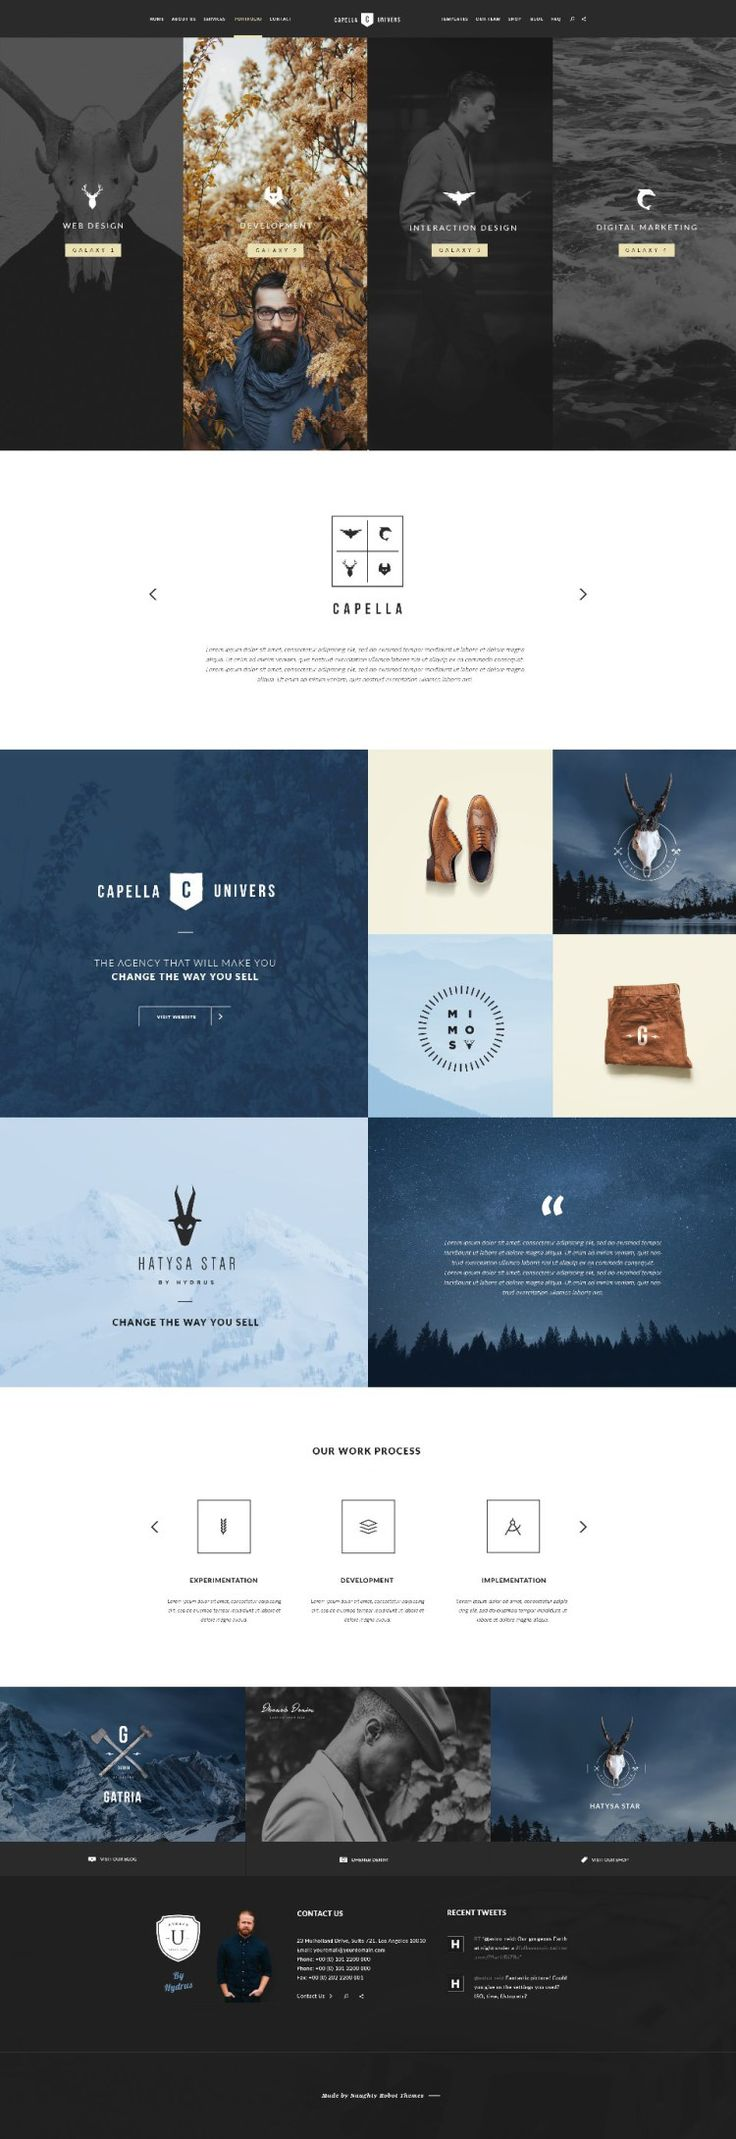 17 best ideas about web design on pinterest ui design web ui design and layout site - Web Page Design Ideas